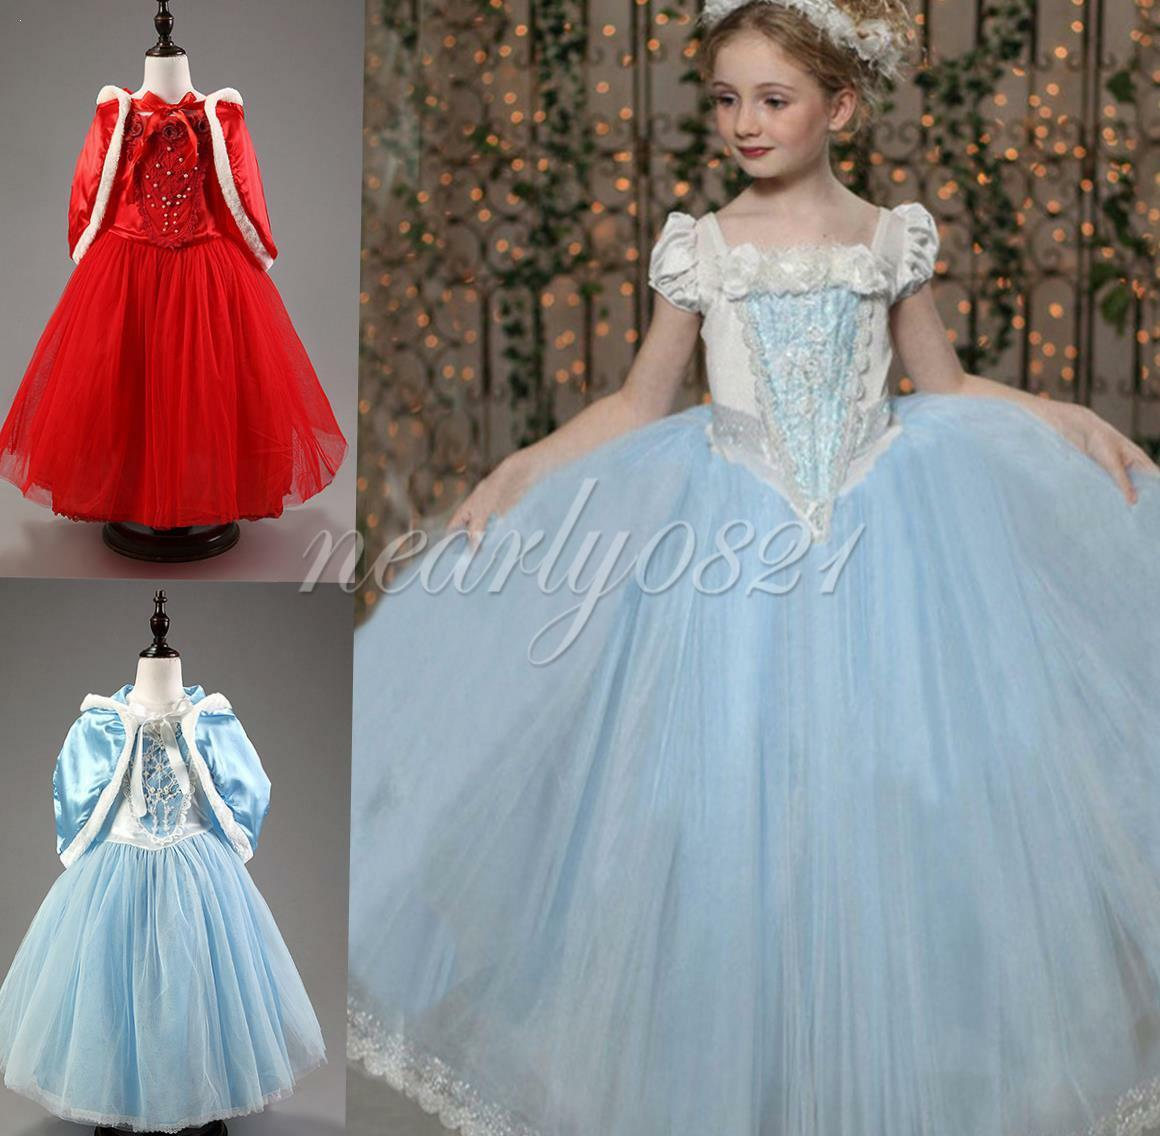 MÄDCHEN CINDERELLA PRINZESSIN Kleid Kinder Cosplay Party Fancy ...